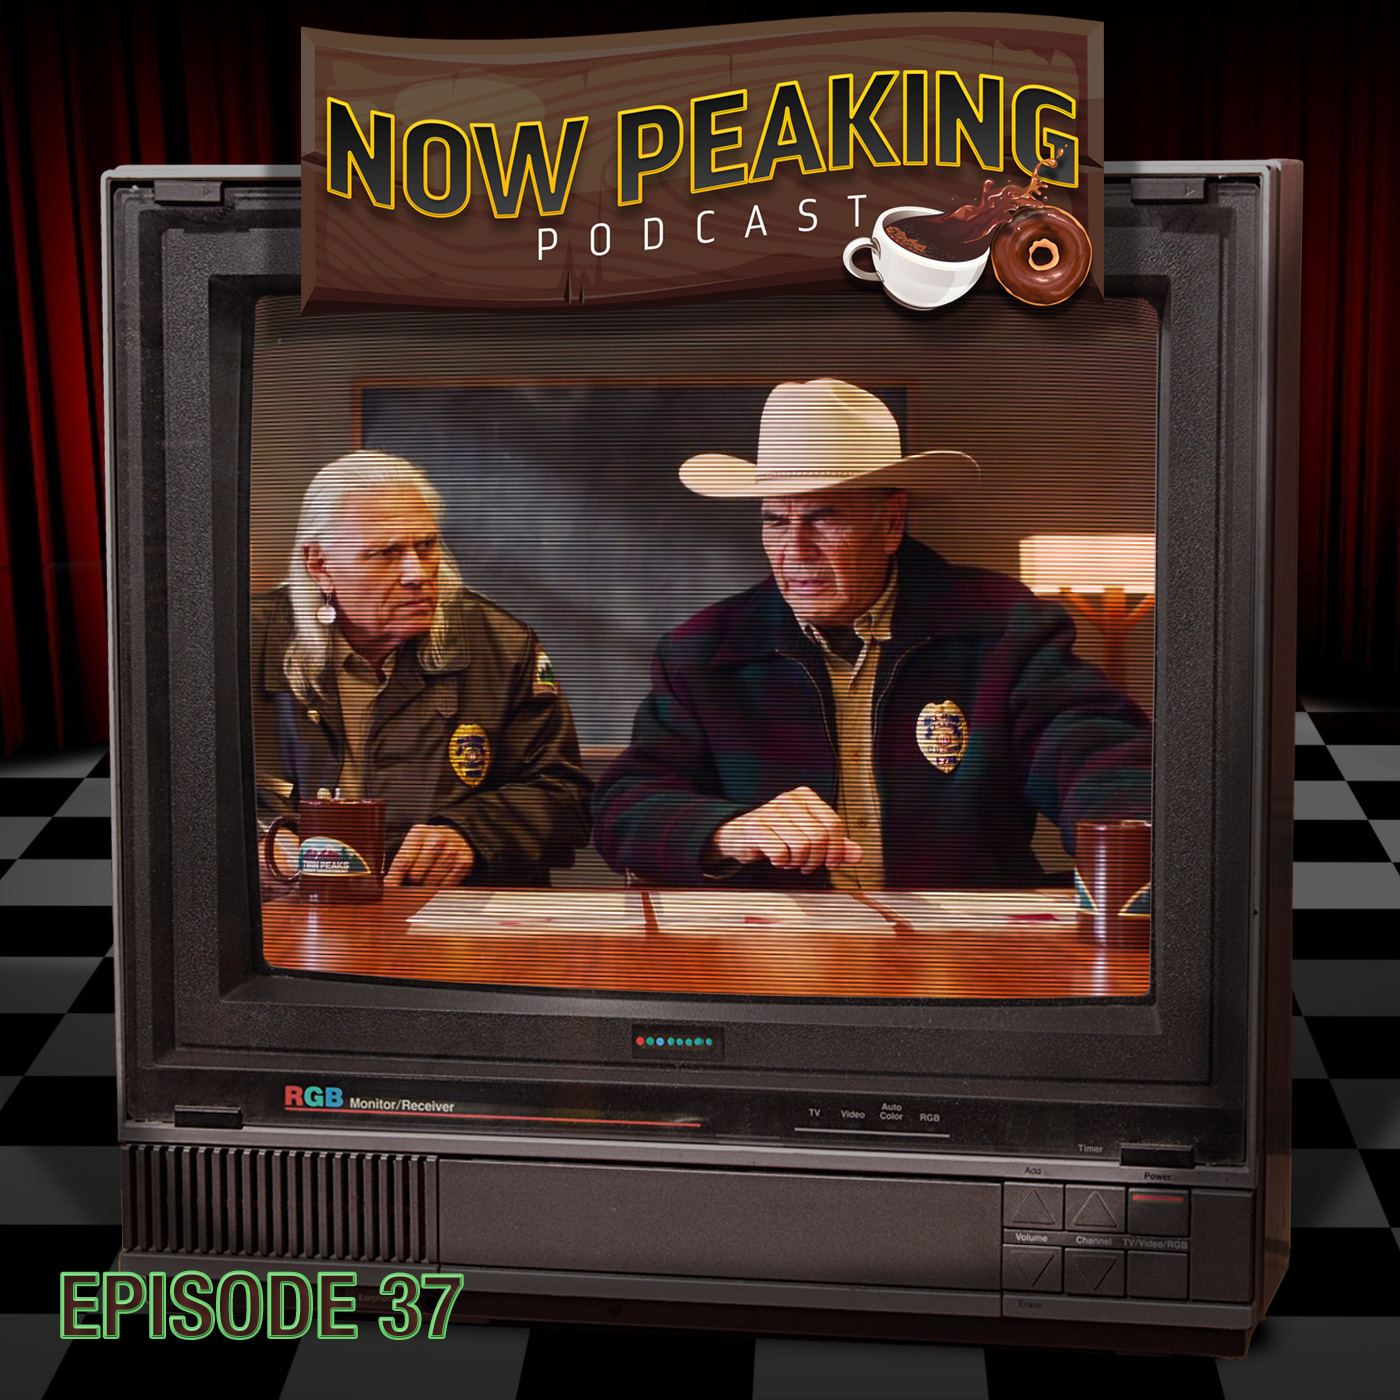 Now Peaking Episode 37: There's a body all right  - For Annual Subscribers